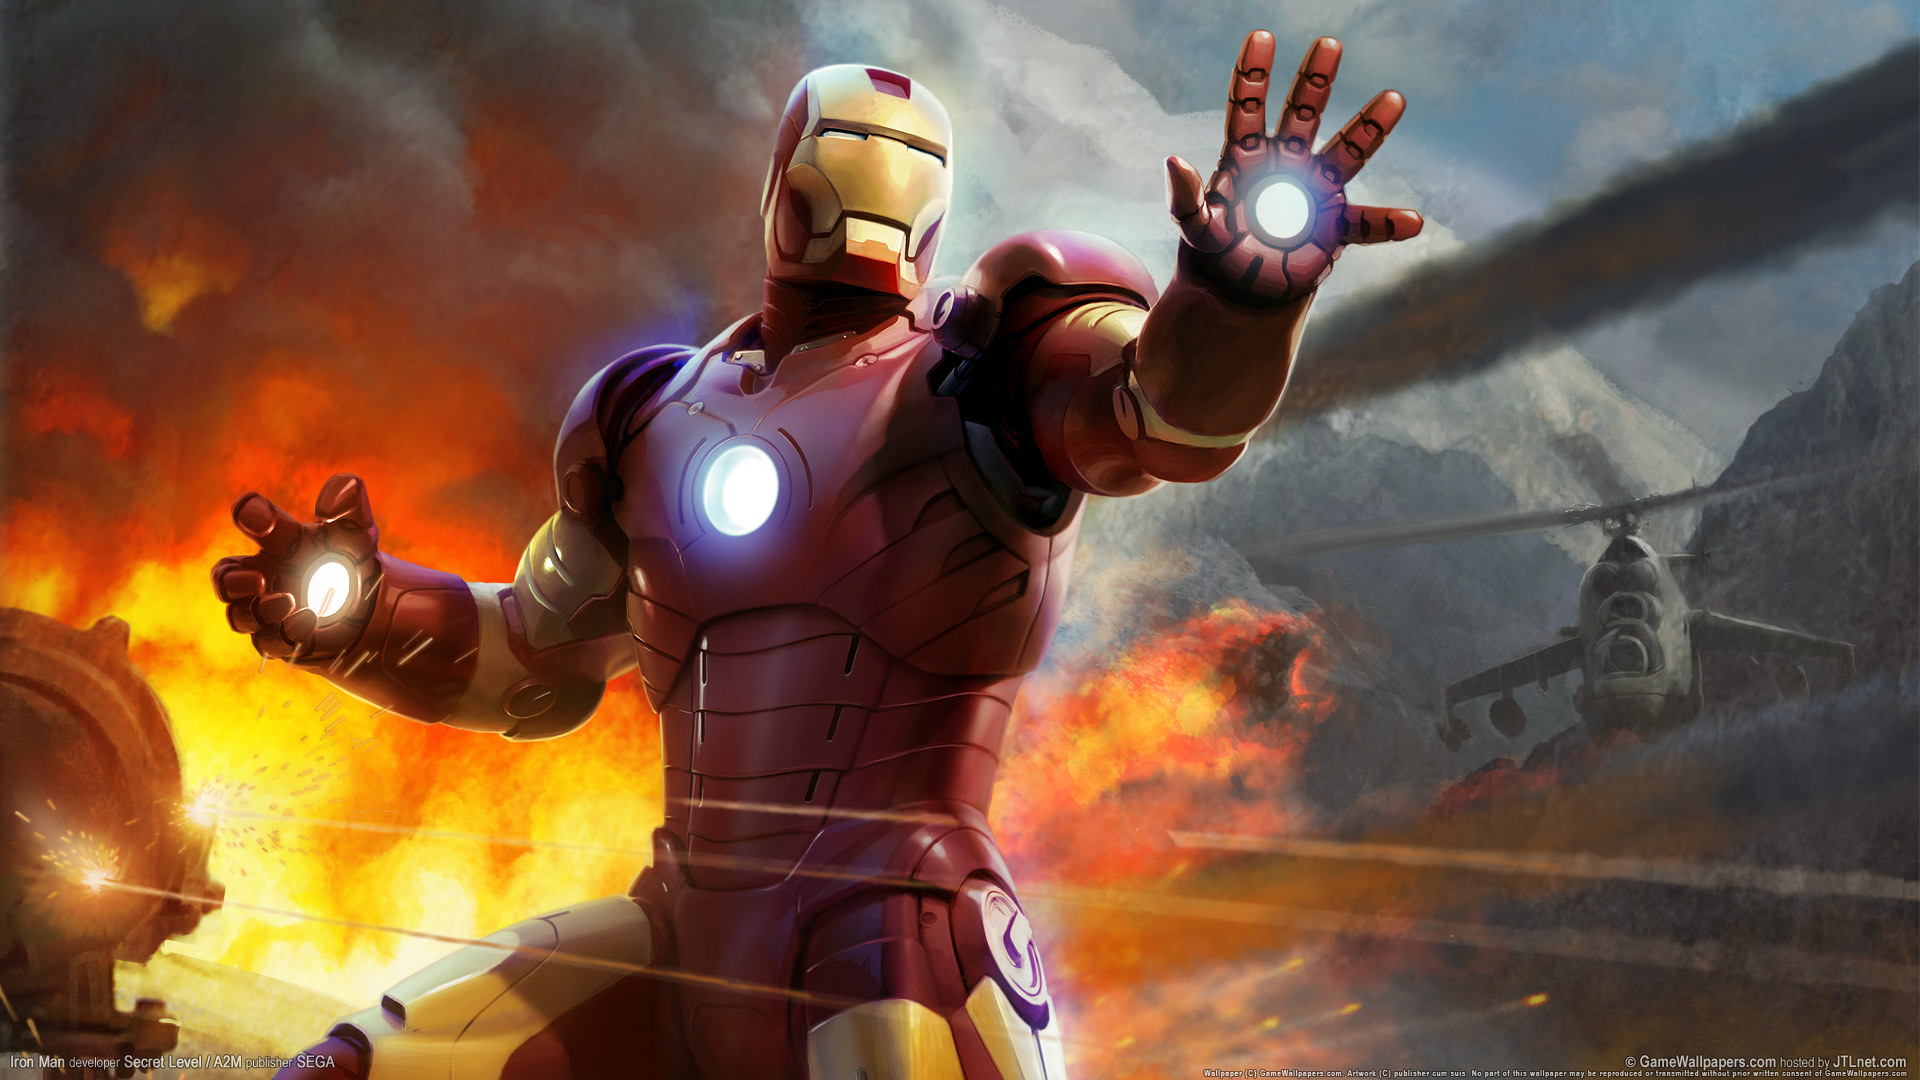 Iron Man Wallpapers Full Hd Desktop Background: Bureau Iron Man Wallpaper HD